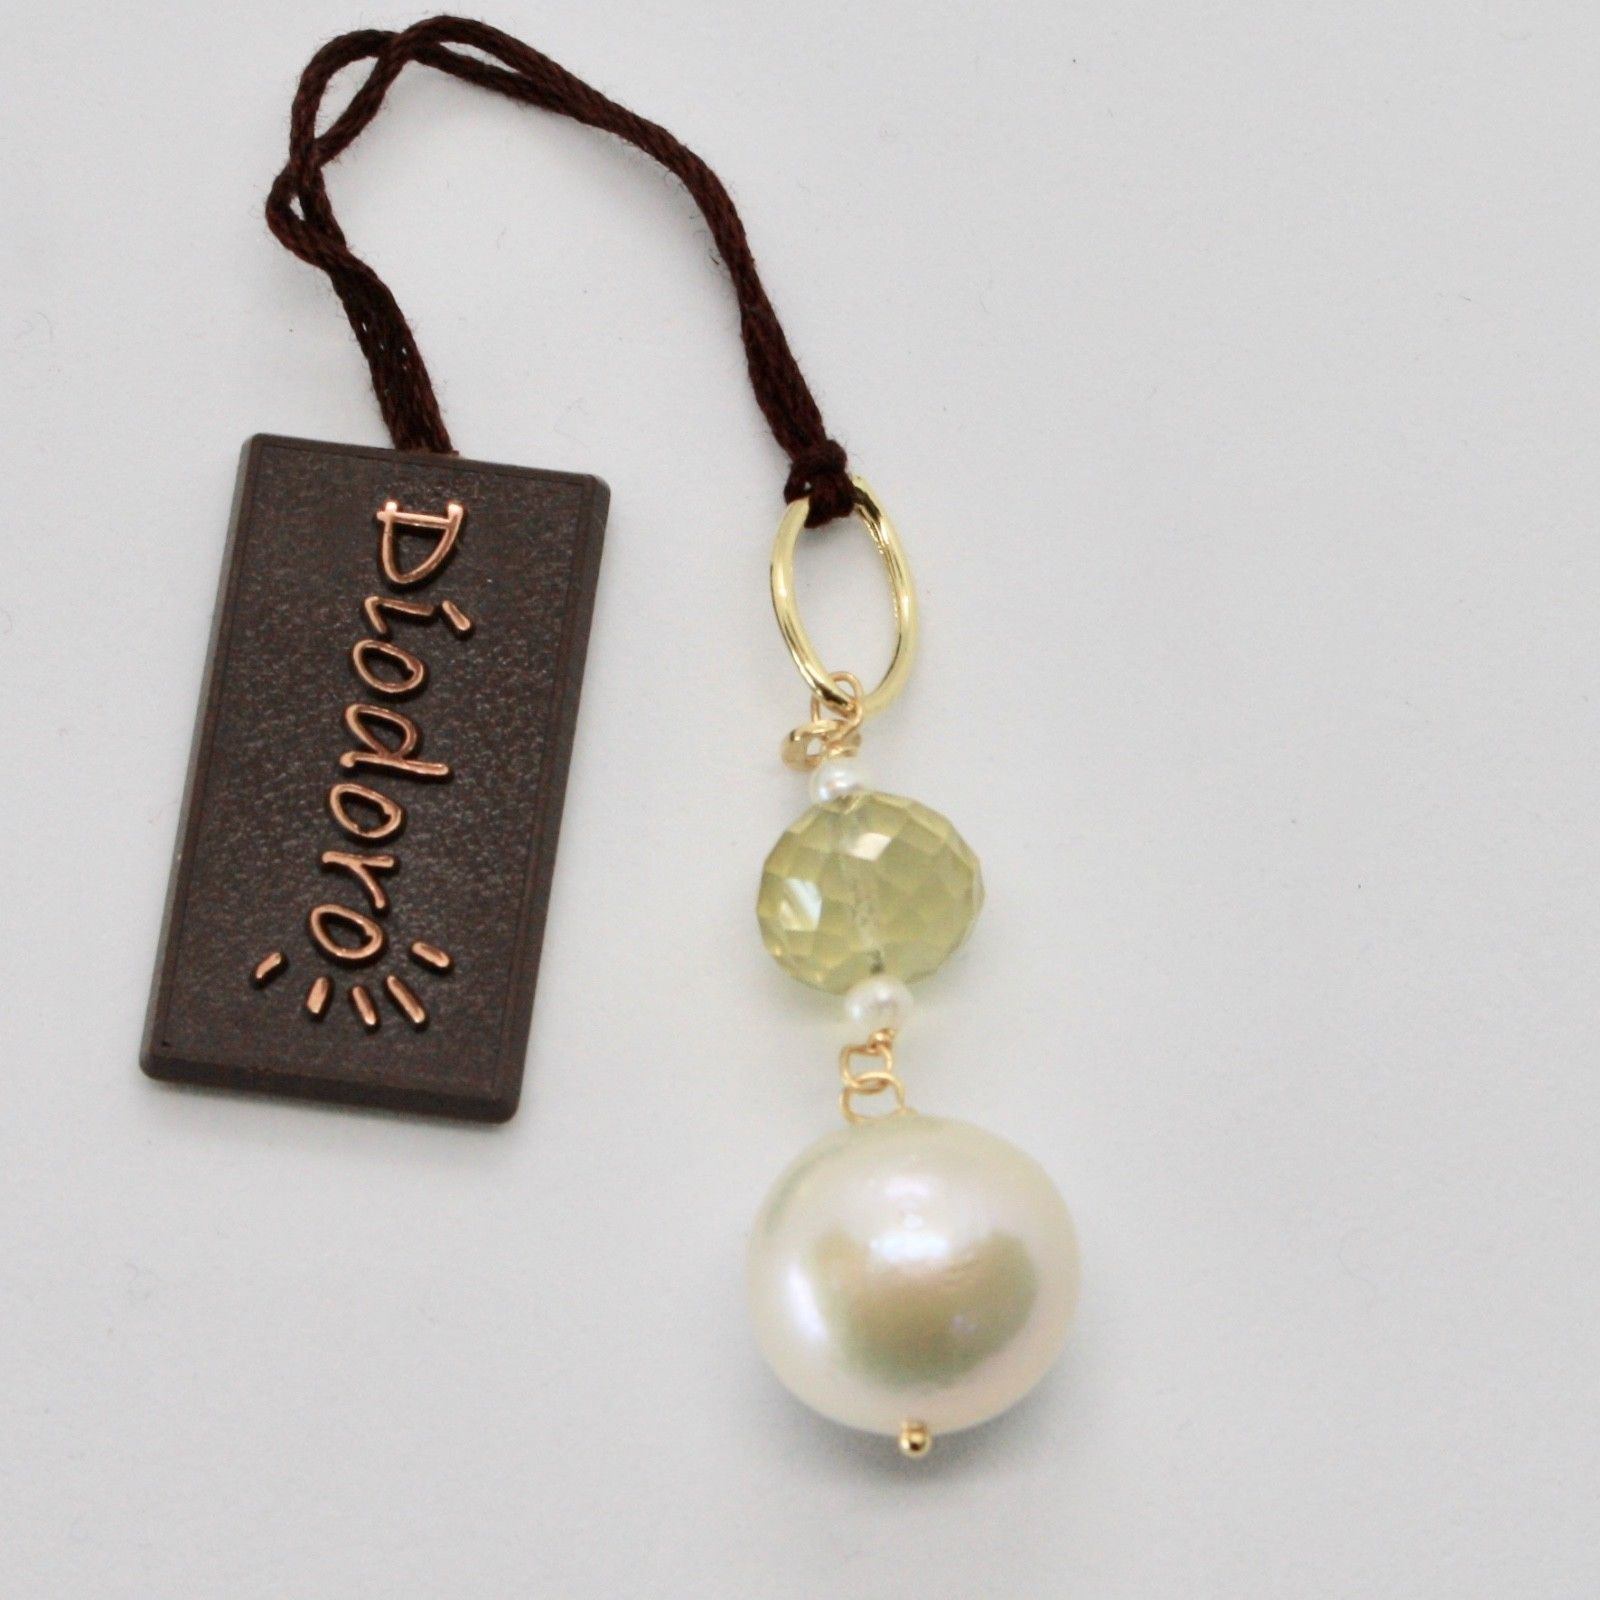 Charm 18k 750 Yellow Gold with White Pearl Freshwater and Lemon Quartz